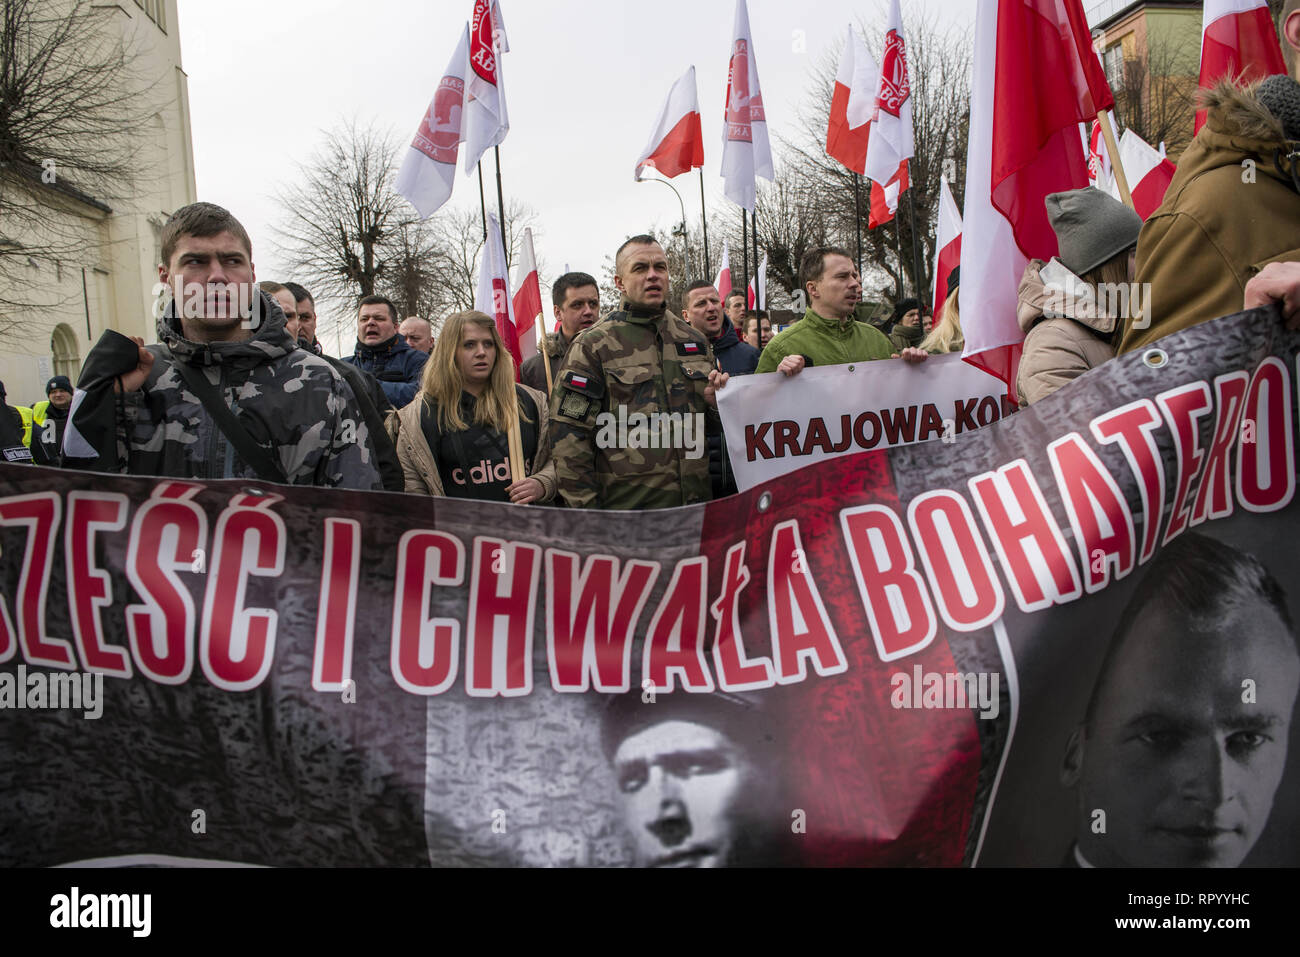 Hajnowka, Poldlaskie, Poland. 23rd Feb, 2019. Polish nationalists seen marching to commemorate the Cursed Soldiers.Polish nationalists organized a commemorative march of the 'Cursed Soldiers'' in the city of Hajnowka next to the Belarusian border. The Cursed Soldiers also known as the Doomed Soldiers were anti-communist resistant fighters after WWII, however they were also famous of committing crimes against civilians, mostly ethnic Belarusians. Credit: Attila Husejnow/SOPA Images/ZUMA Wire/Alamy Live News - Stock Image